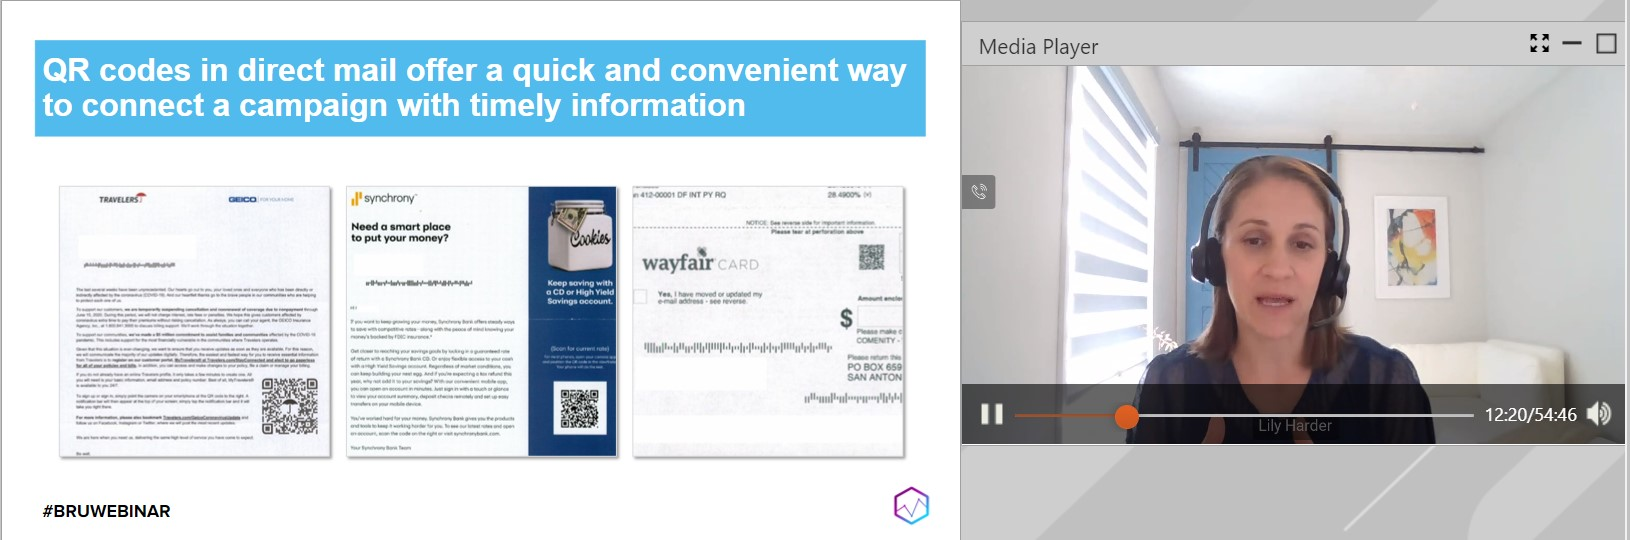 Lily Harder shares some examples of QR codes used successfully.